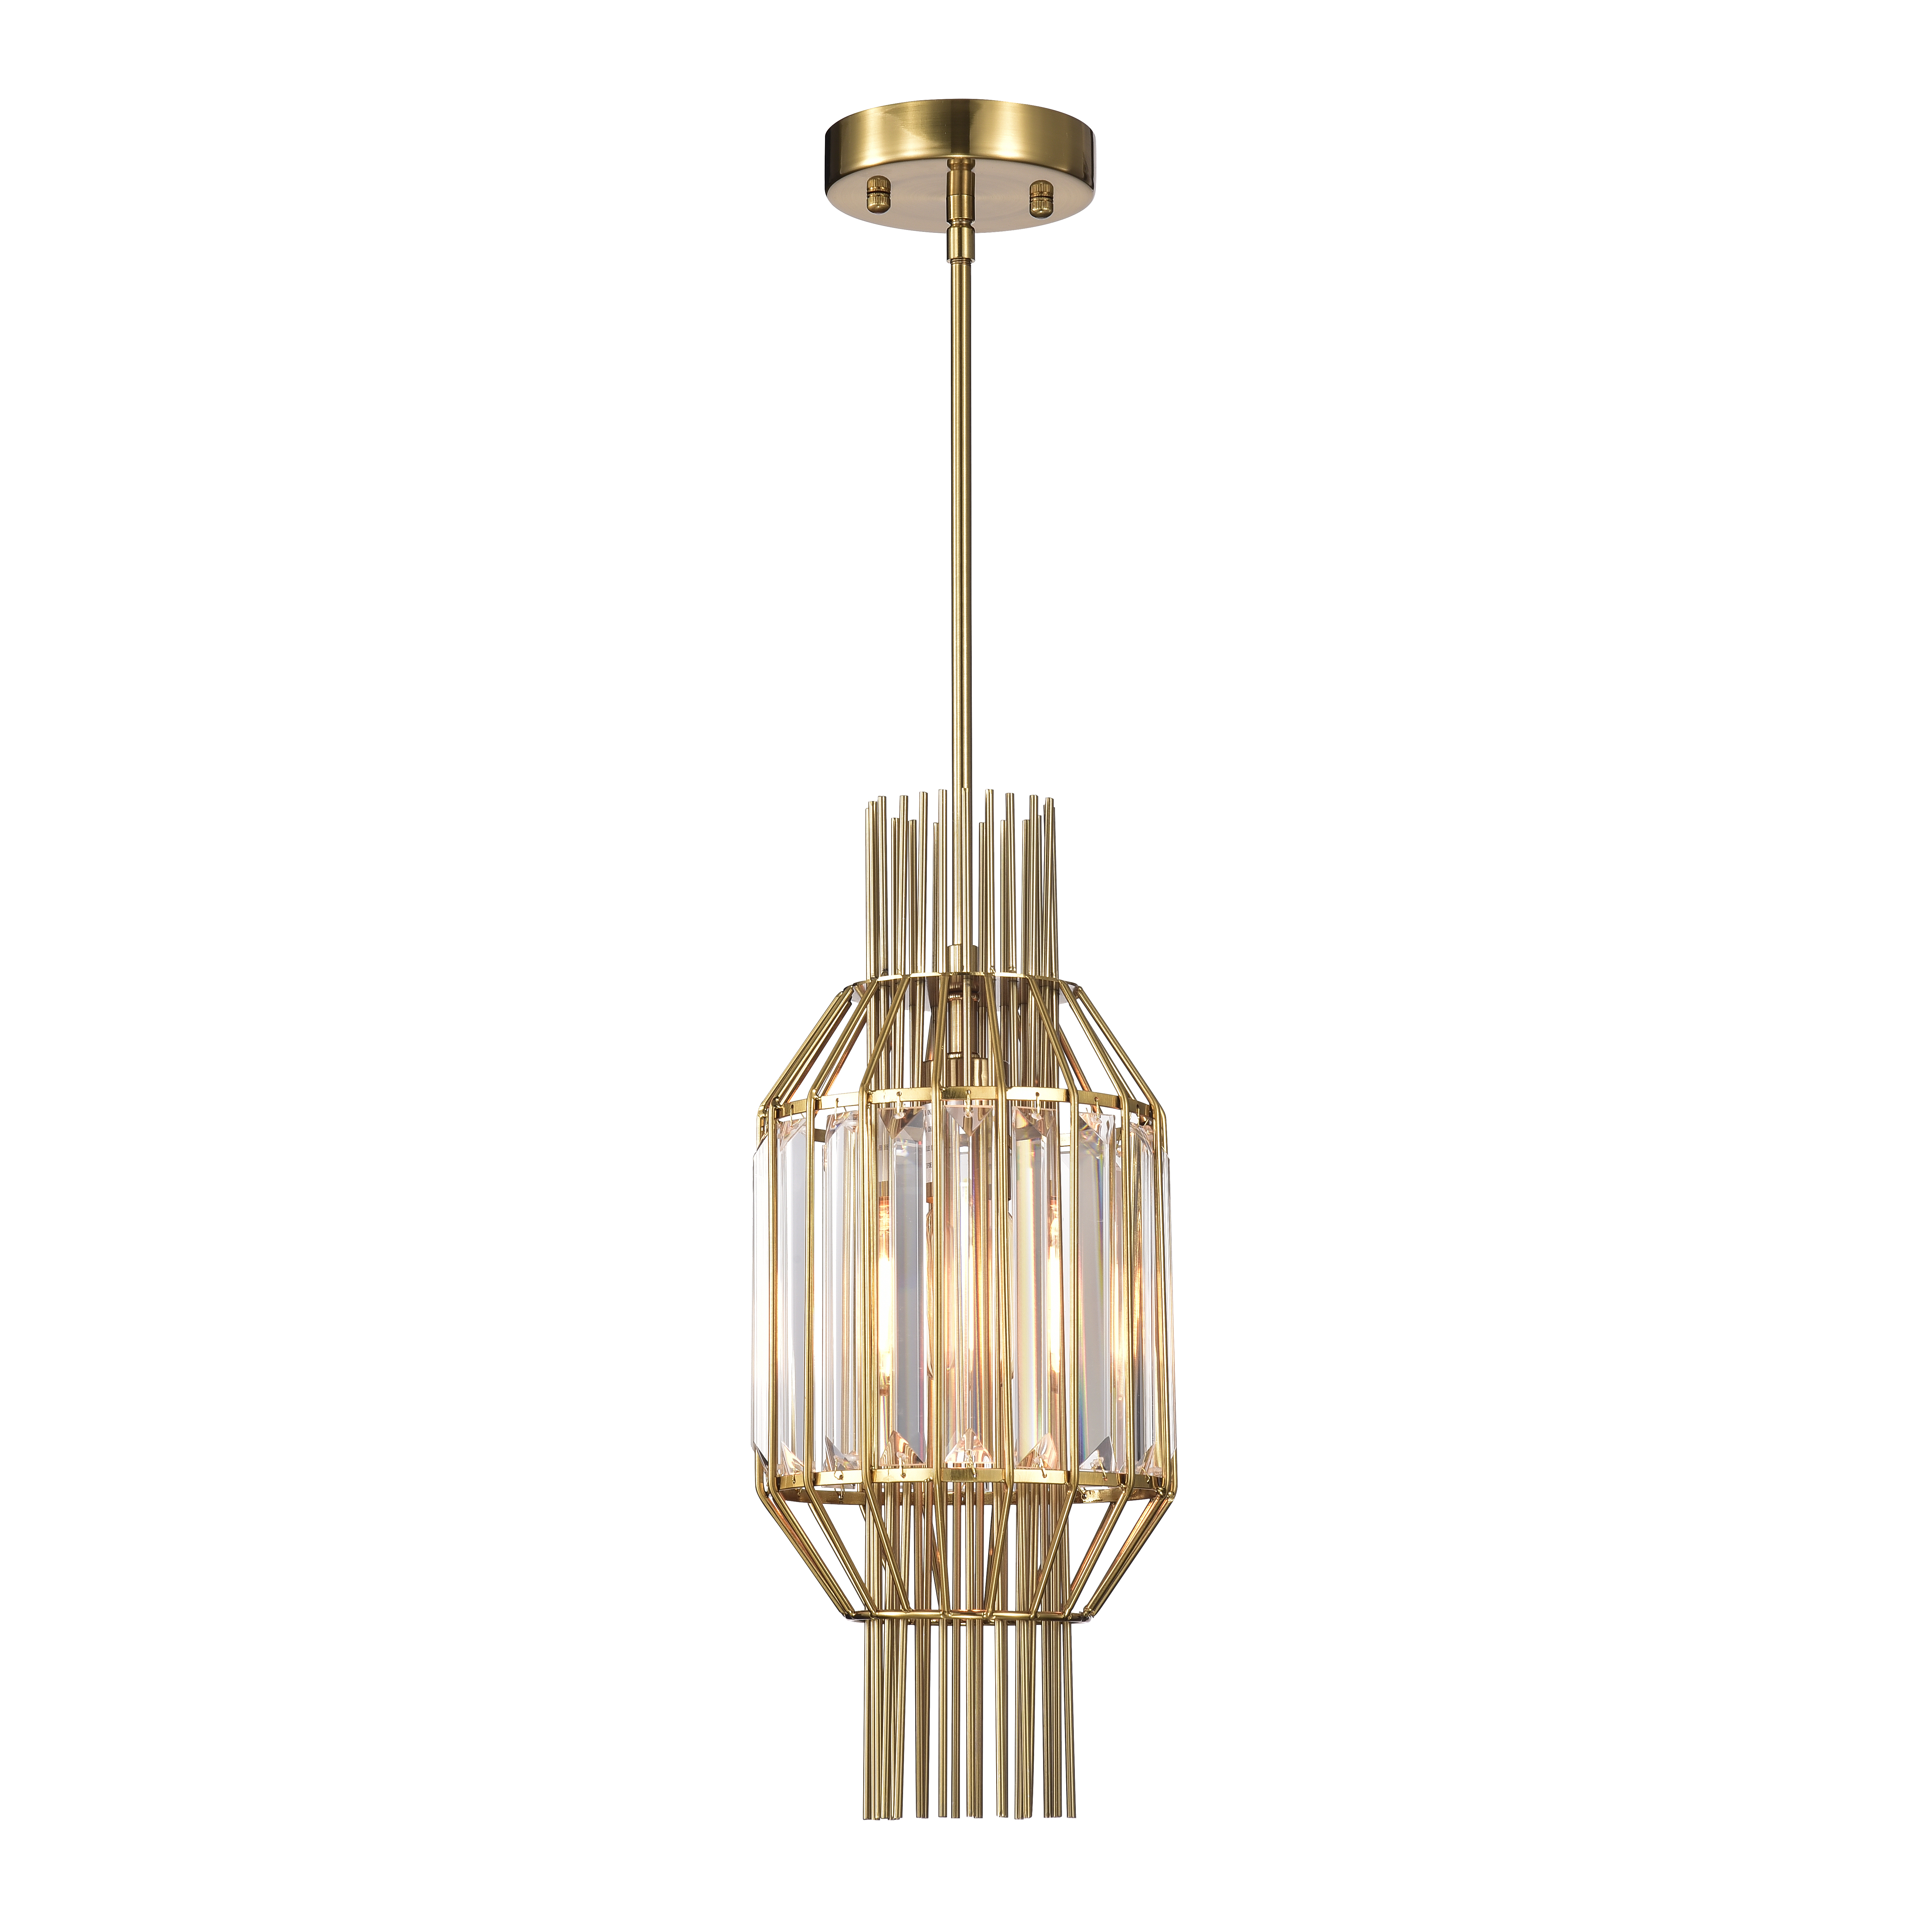 Aes 1-Light Polished Brass and Crystal Caged Pendant Lamp